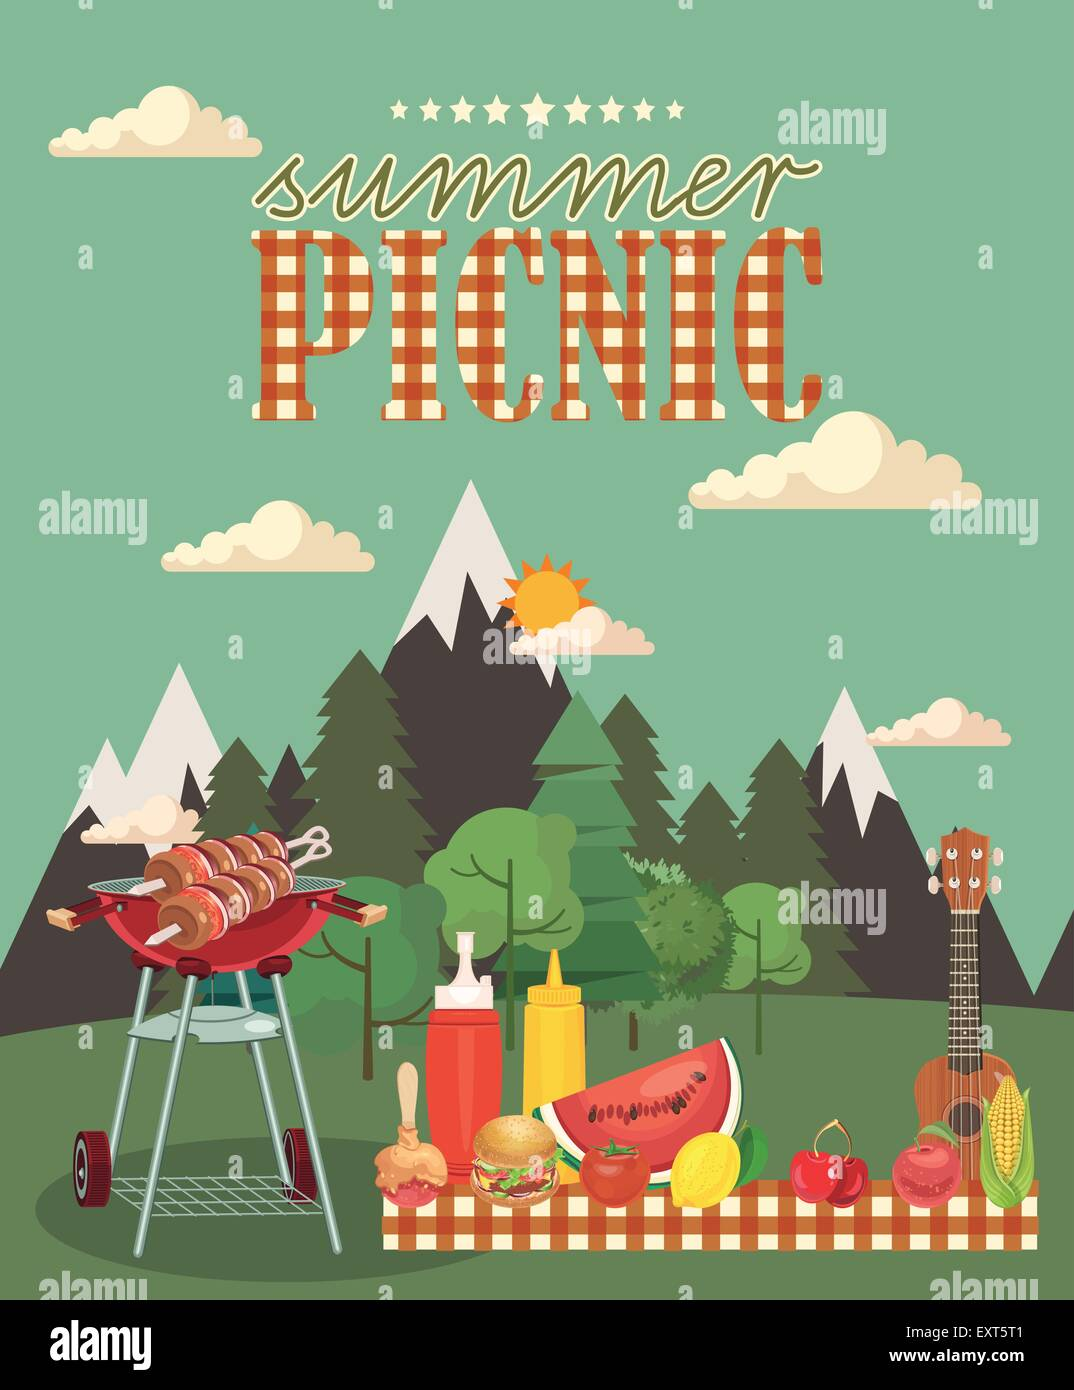 Flat barbecue object picnic items design of invitation card in barbecue object picnic items design of invitation card in vintage style creative banner with food and nature stopboris Choice Image